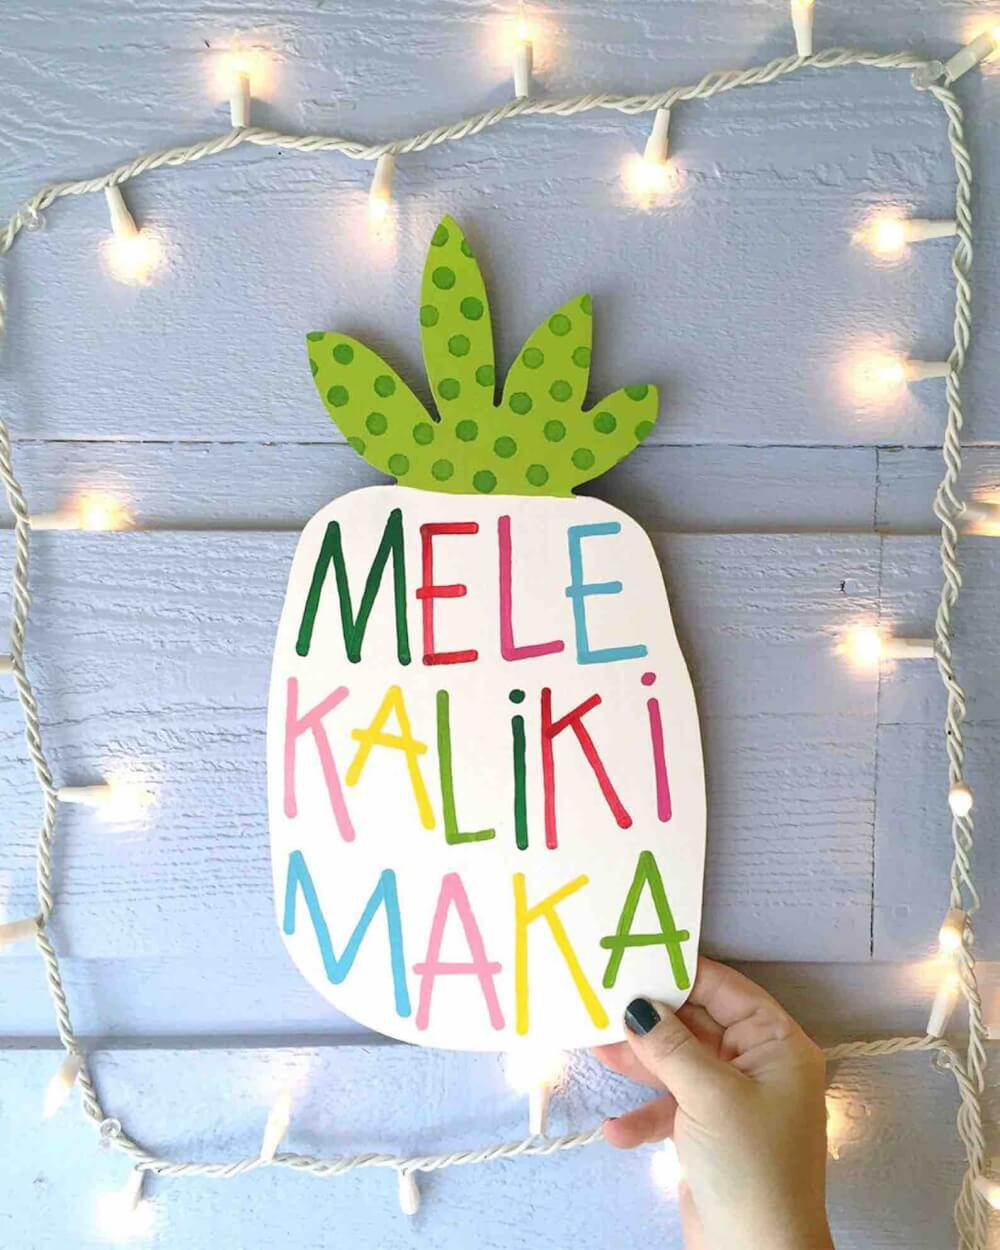 Best Hawaiian Christmas Decorations featured by top Hawaii blogger, Hawaii Travel with Kids: Add some Hawaiian Christmas decorations to your home this holiday season with these top Hawaii Christmas decorations ideas from top Hawaii blog Hawaii Travel with Kids: image of a Mele Kalikimaka pineapple sign